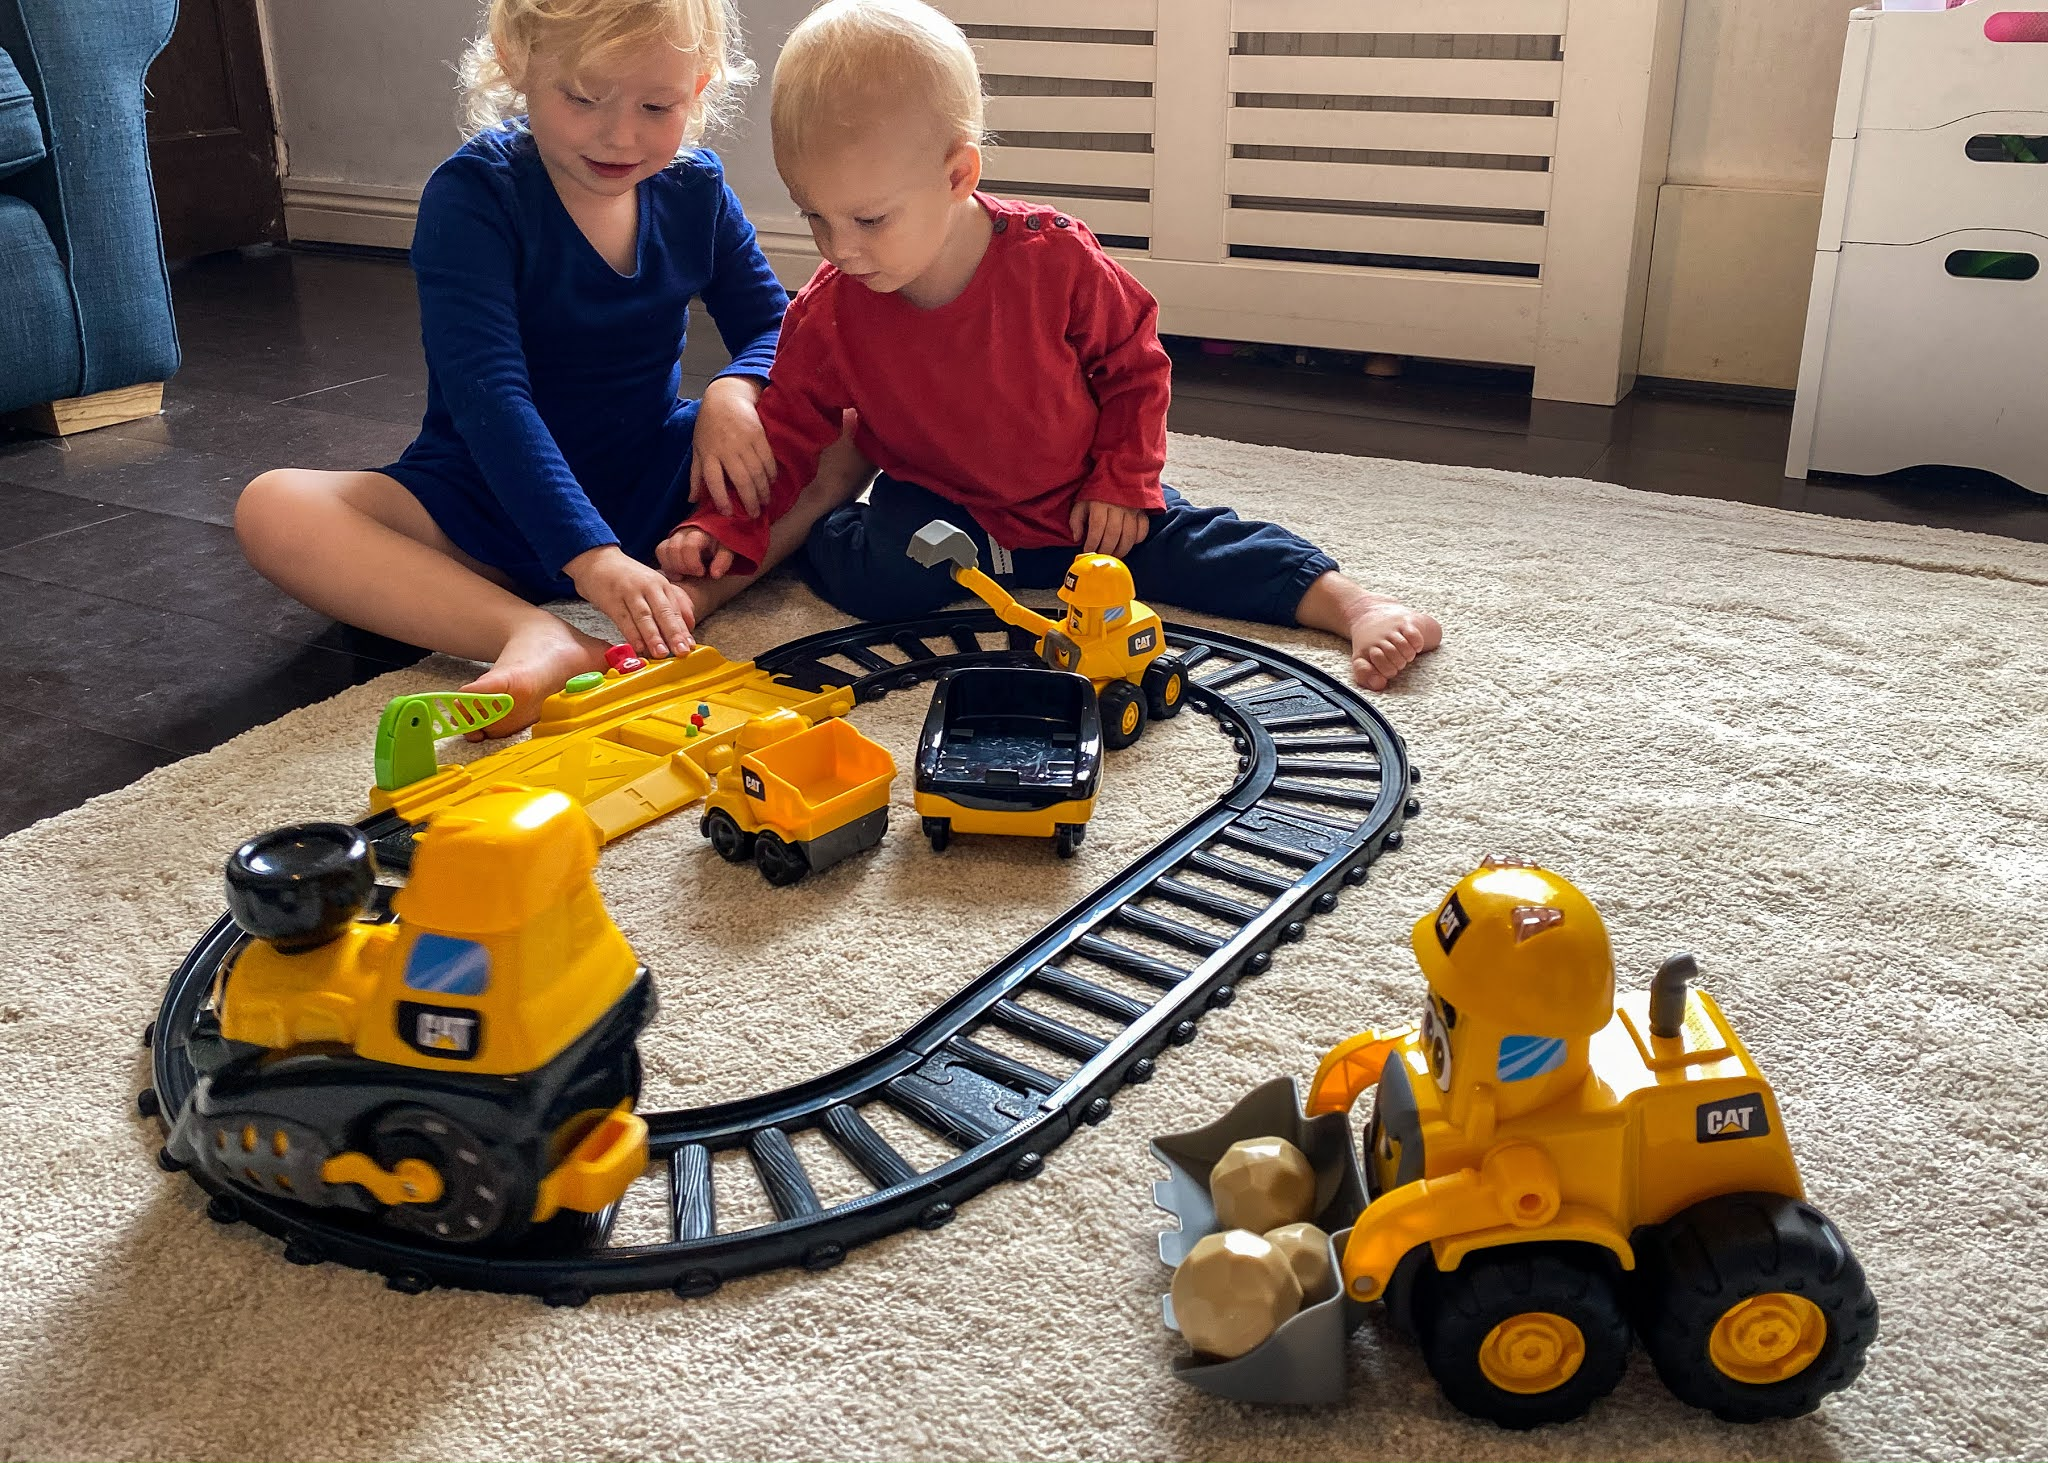 We received some CAT® Junior Crew™preschool construction toys to review including the train set, a digger and a wheel loader